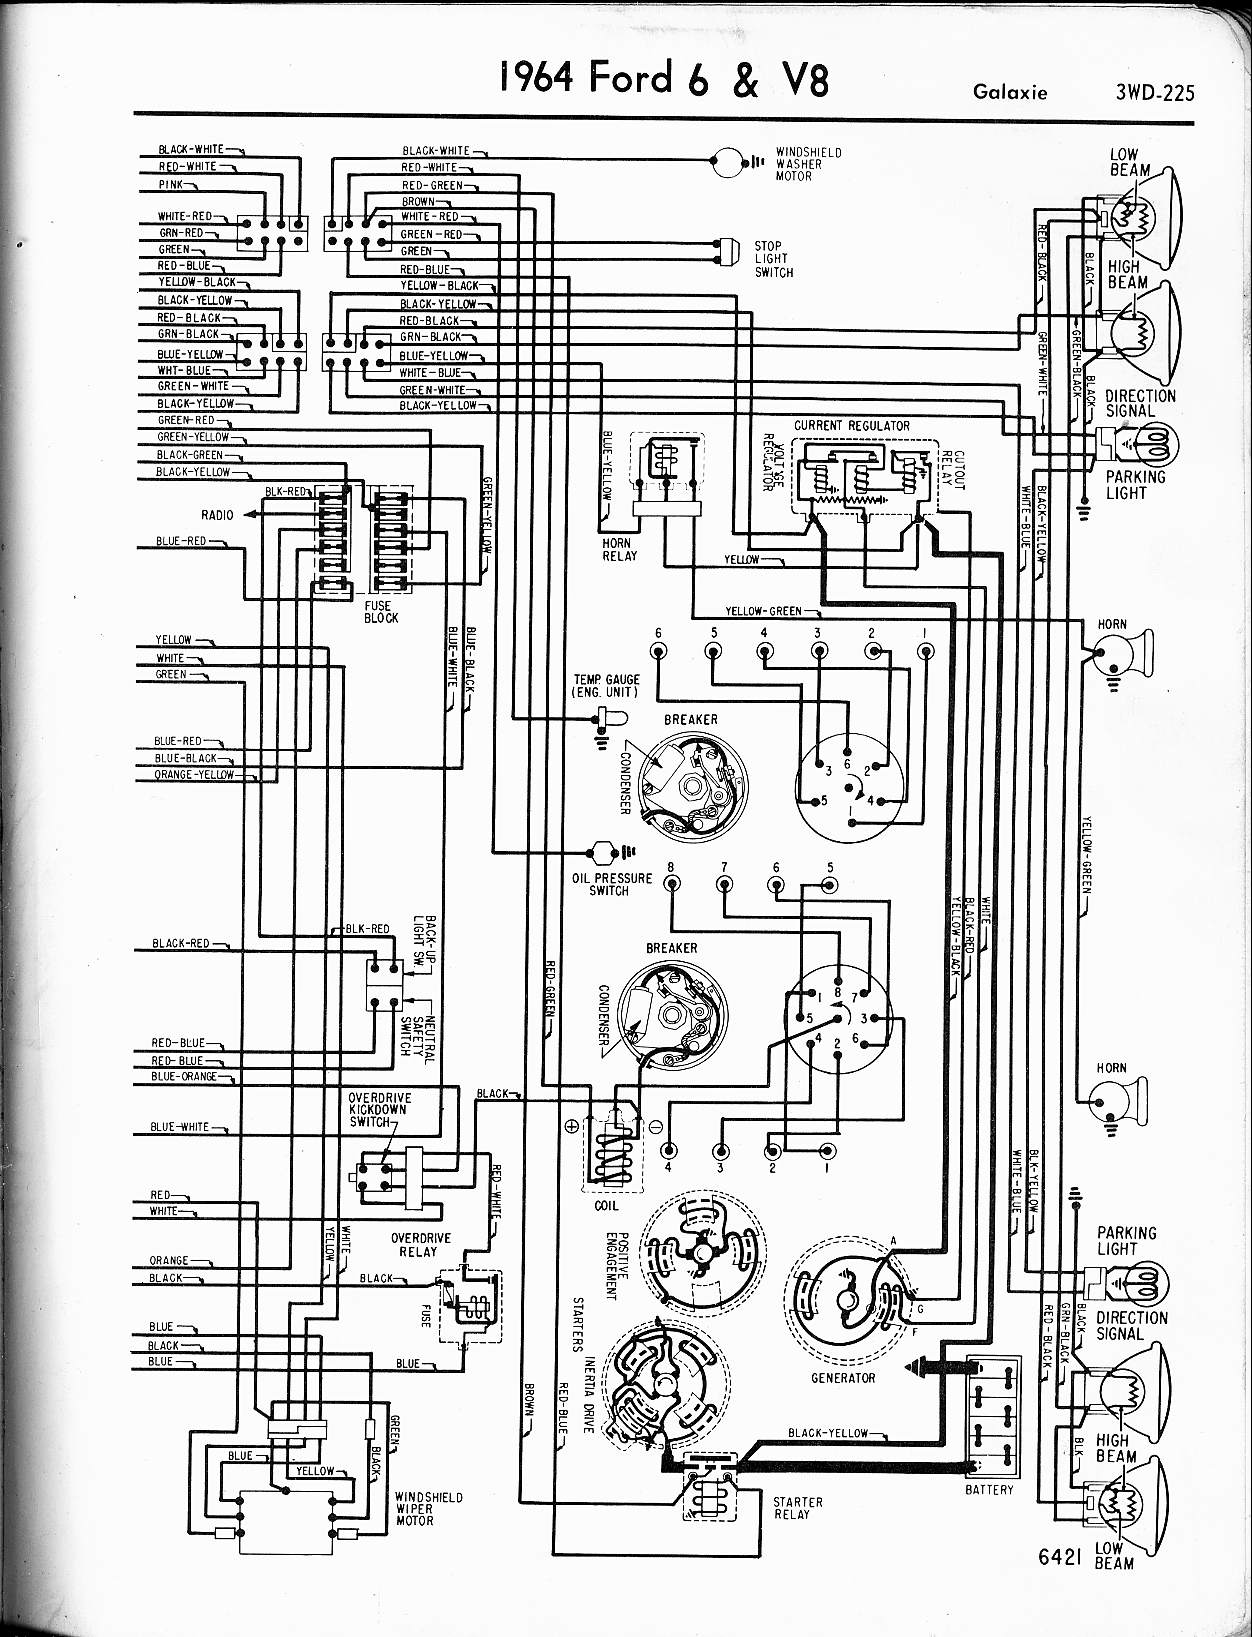 MWire5765 225 57 65 ford wiring diagrams Ford E 350 Wiring Diagrams at honlapkeszites.co